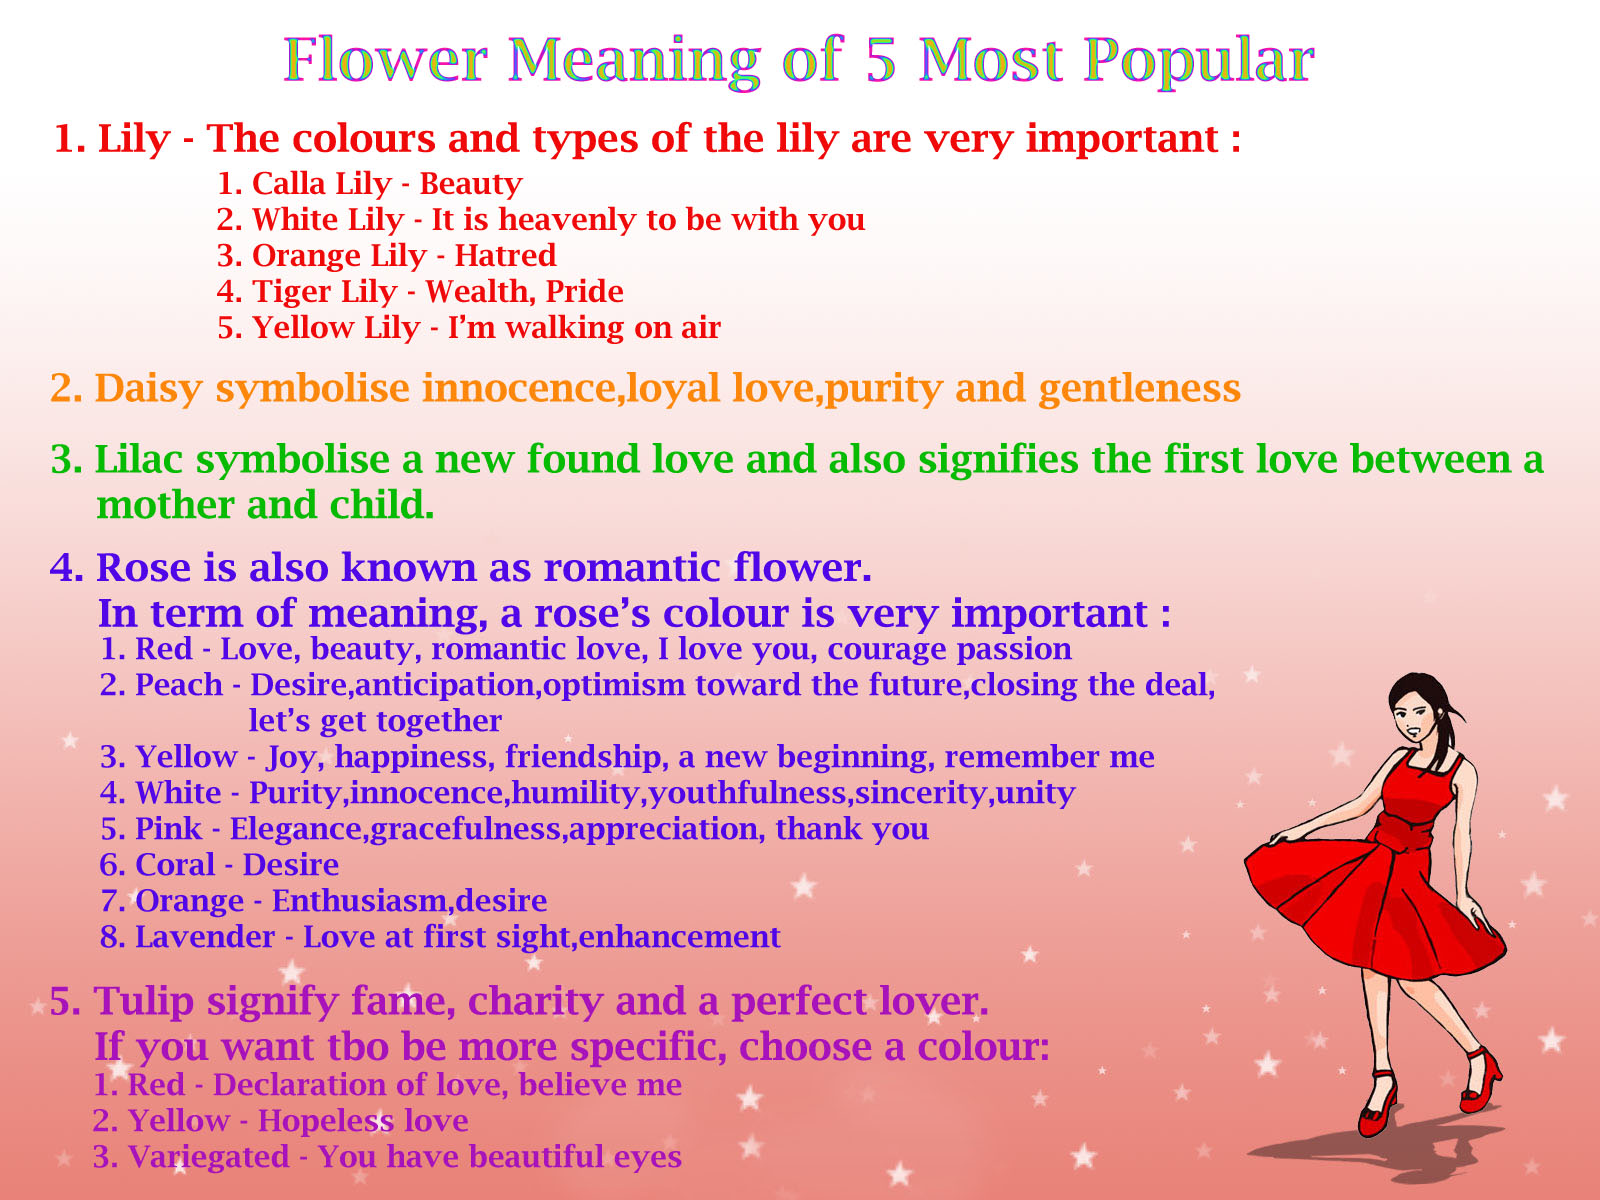 5 Favorite Flower Meanings | The Secret Language of Flowers - photo#23